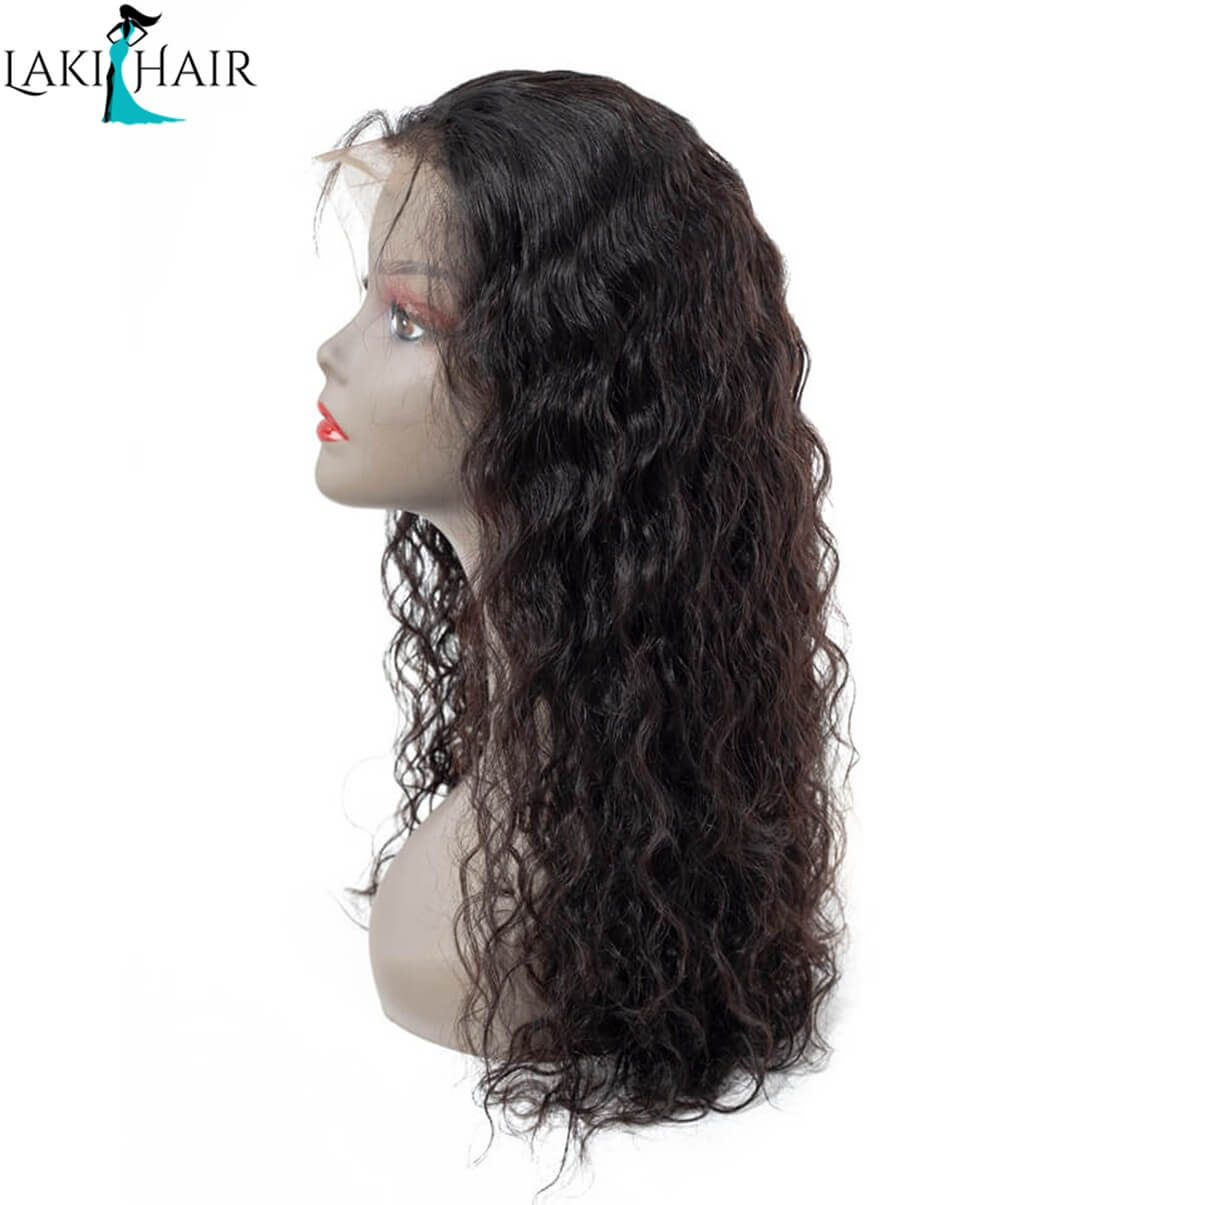 Lakihair 100% Virgin Human Hair Wigs Natural Wave Lace Front Wigs Unprocessed Human Hair Glueless Lace Wigs With Baby Hair